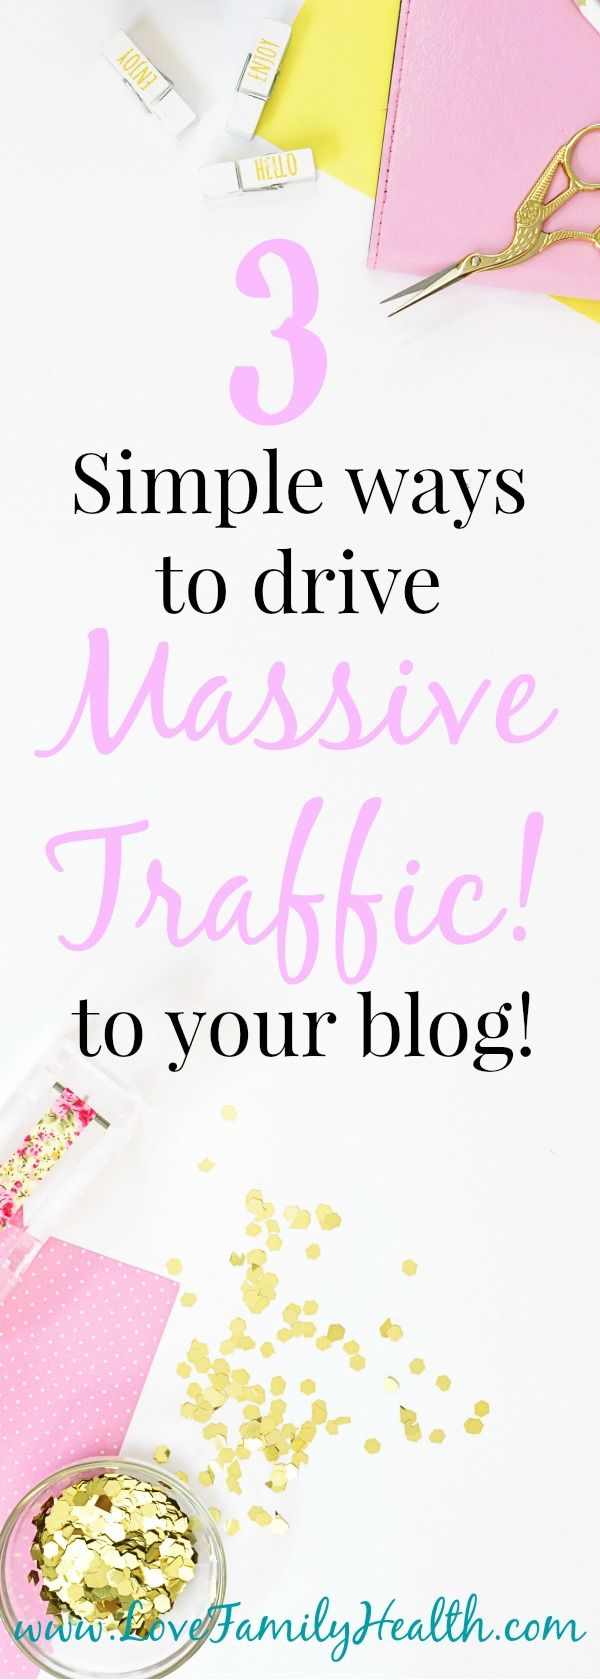 Here are 3 simple ways to increase your blogs traffic! #increaseblogtraffic